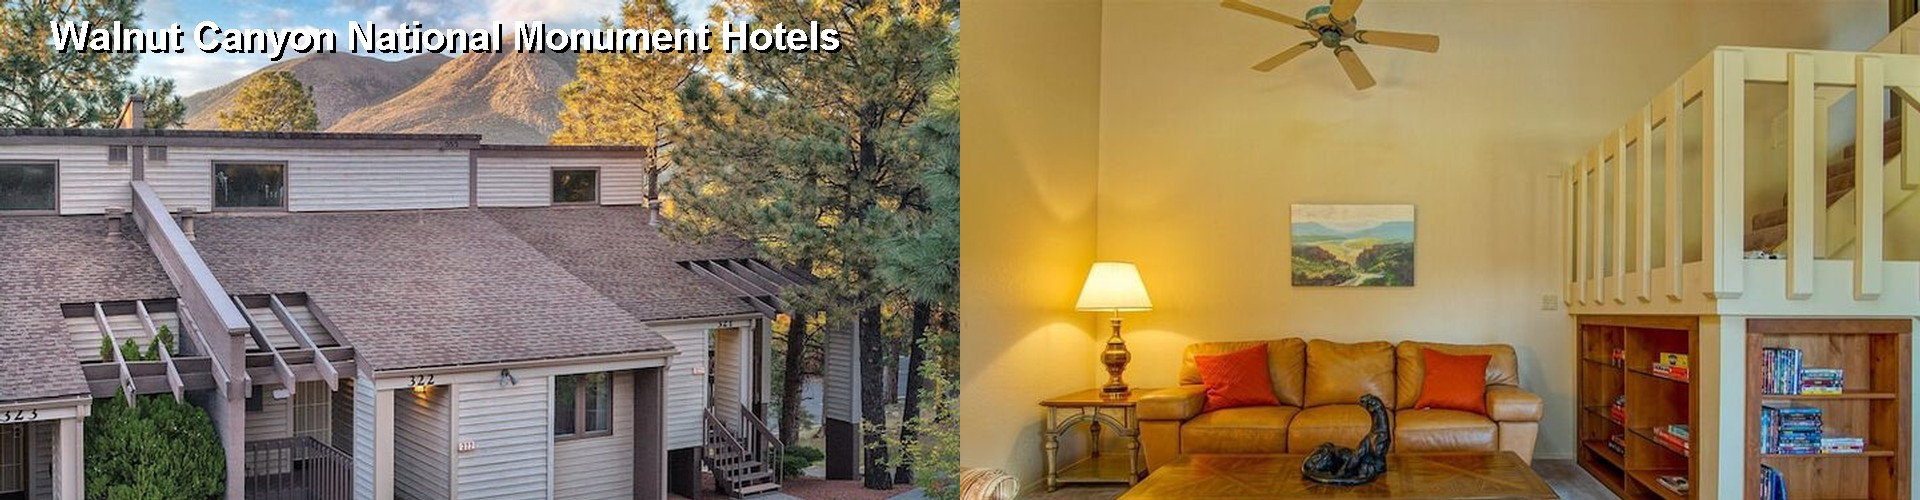 5 Best Hotels near Walnut Canyon National Monument